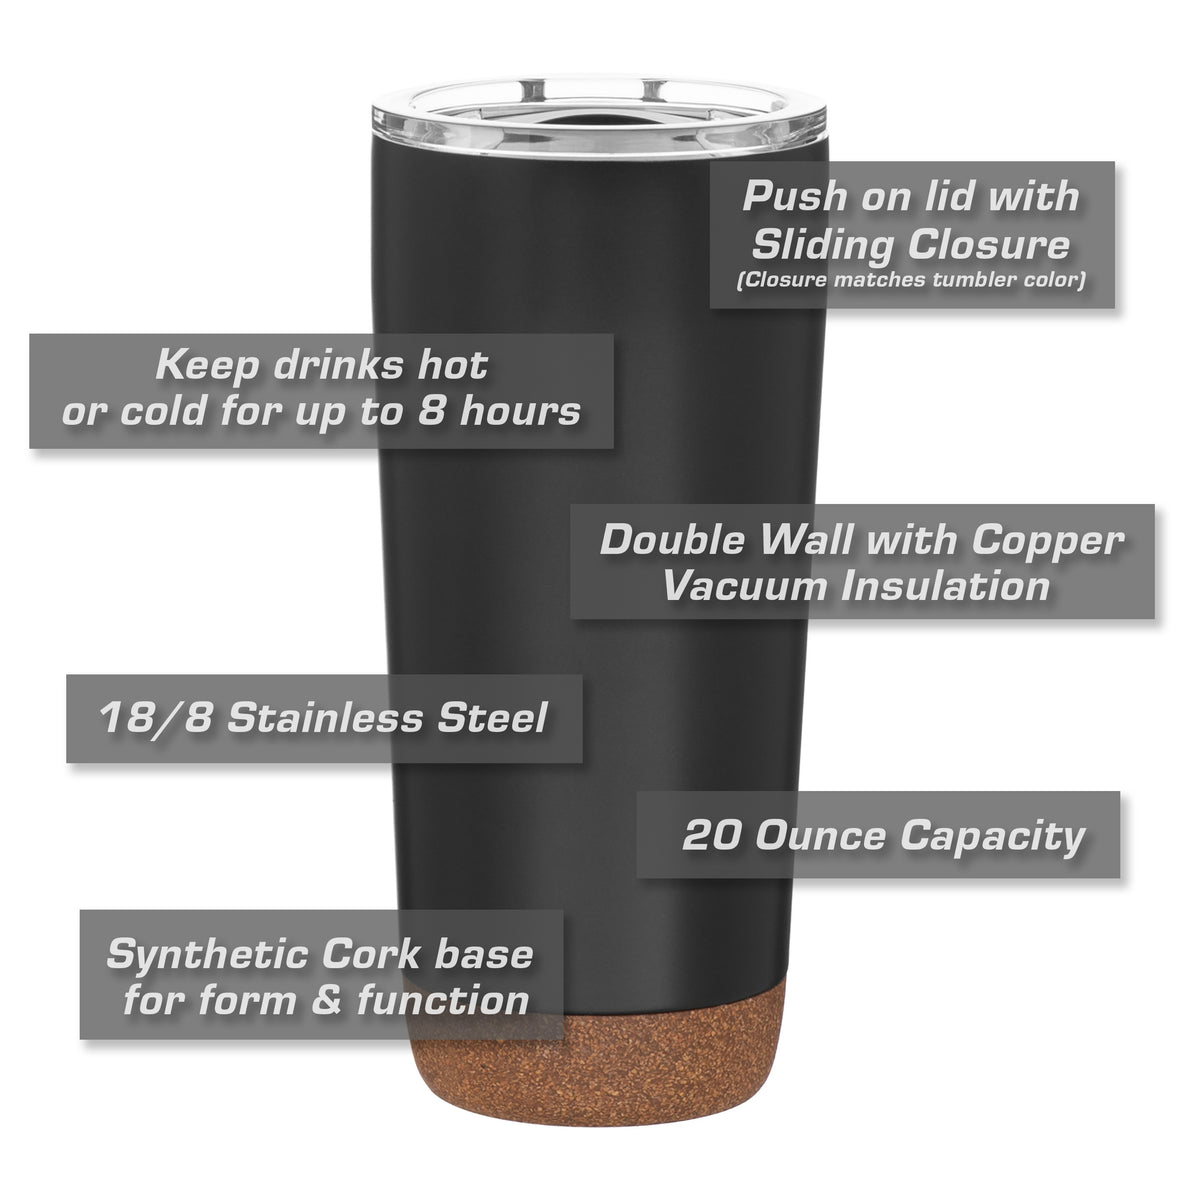 Lamborghini Countach Insulated Stainless Steel Coffee Tumbler - 20 oz